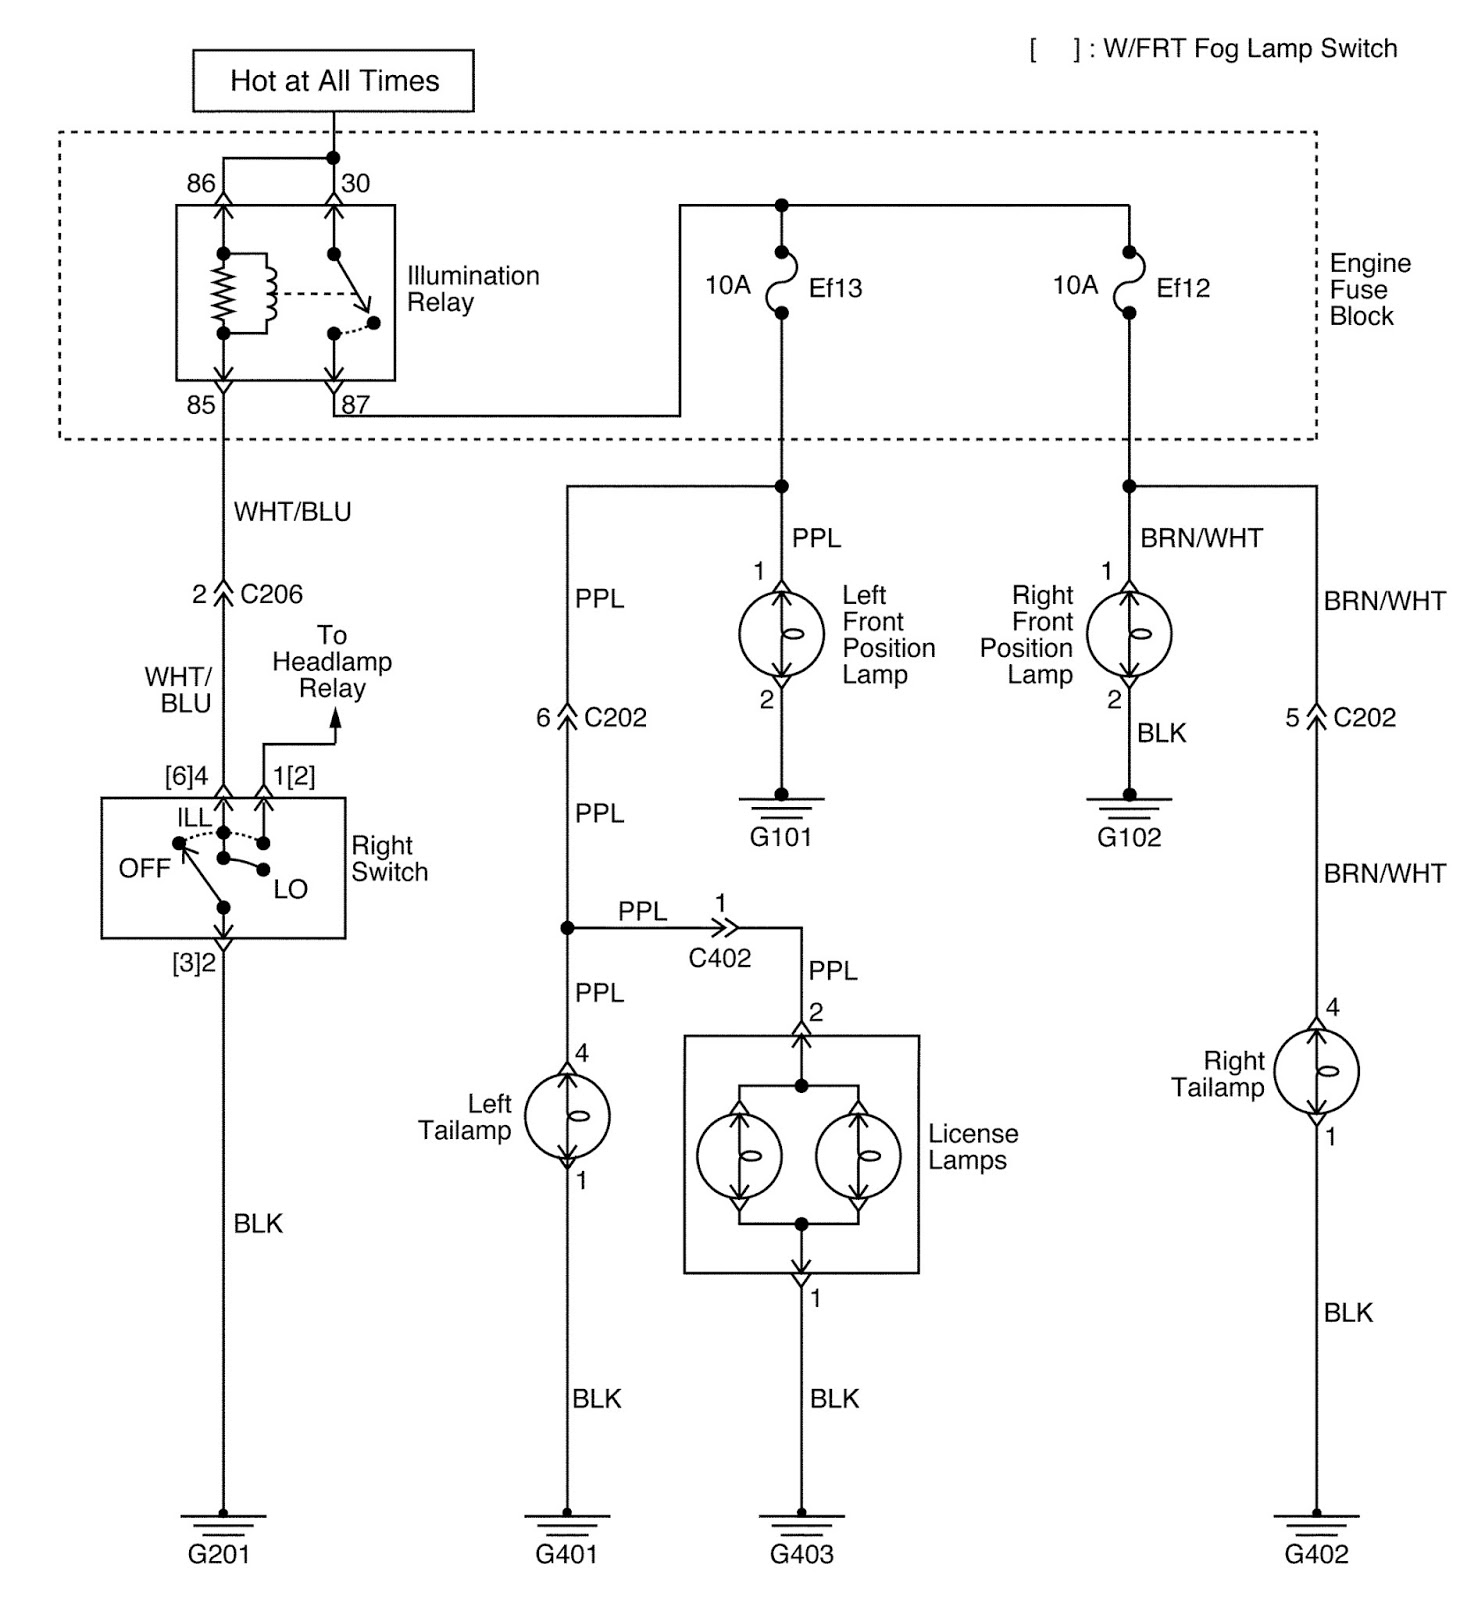 diagram] daewoo matiz wiring diagram full version hd quality wiring diagram  - wiringcars.villaroveri.it  villa roveri